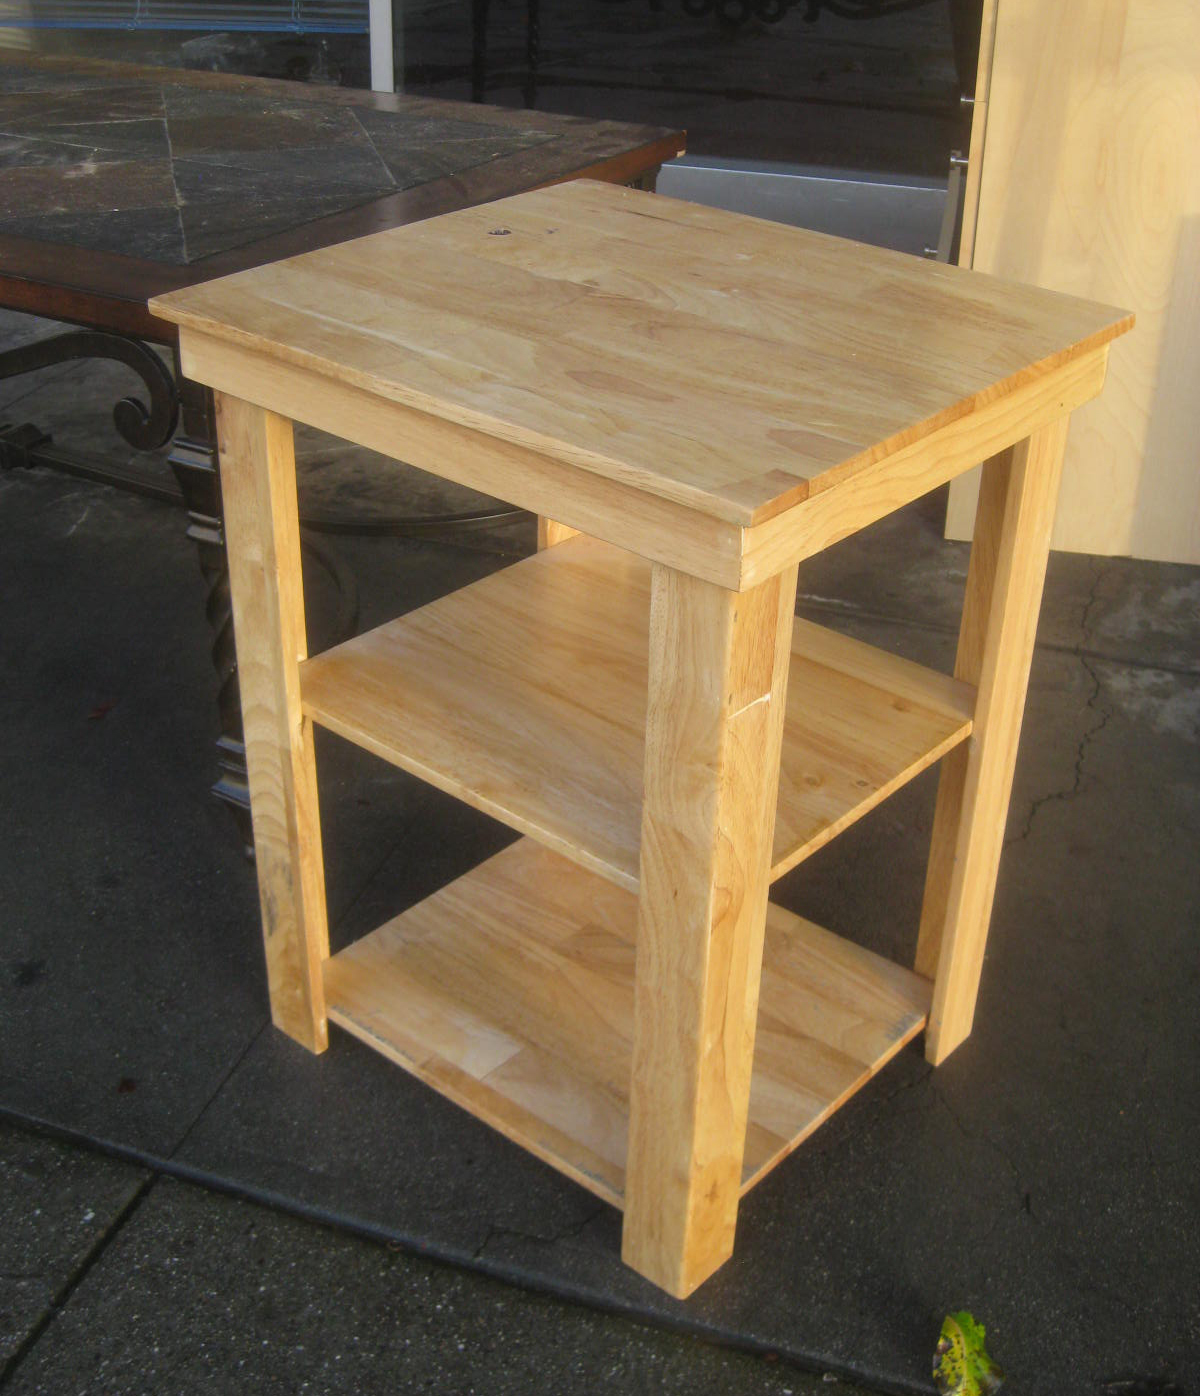 kitchen table bliss kitchen utility table kitchen island cart kitchen utility table updkgvuc a kitchen utility table uhuru furniture collectibles sold small utility table